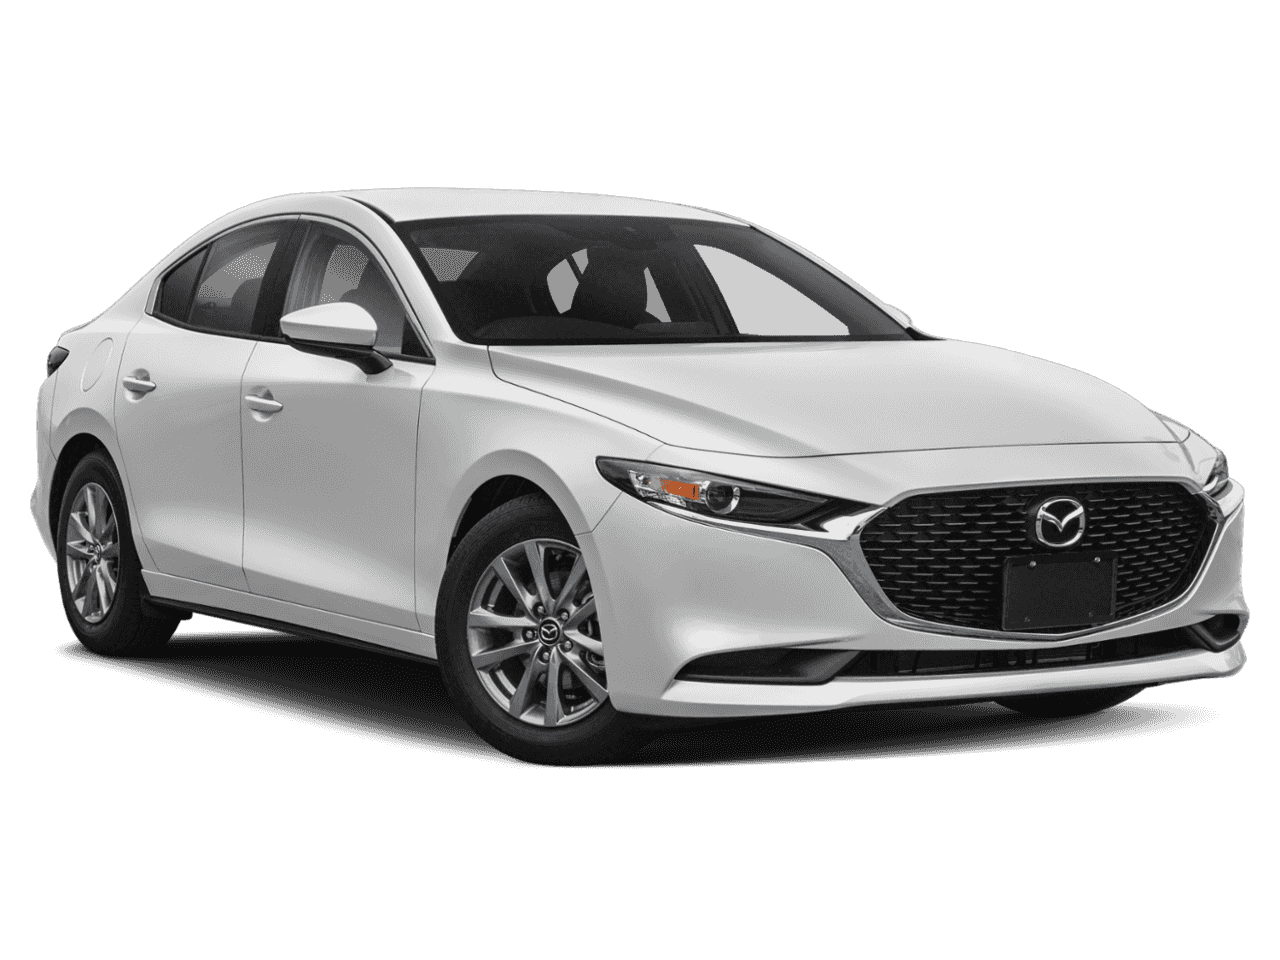 2020 Mazda3 Sedan Base FWD 4dr Car